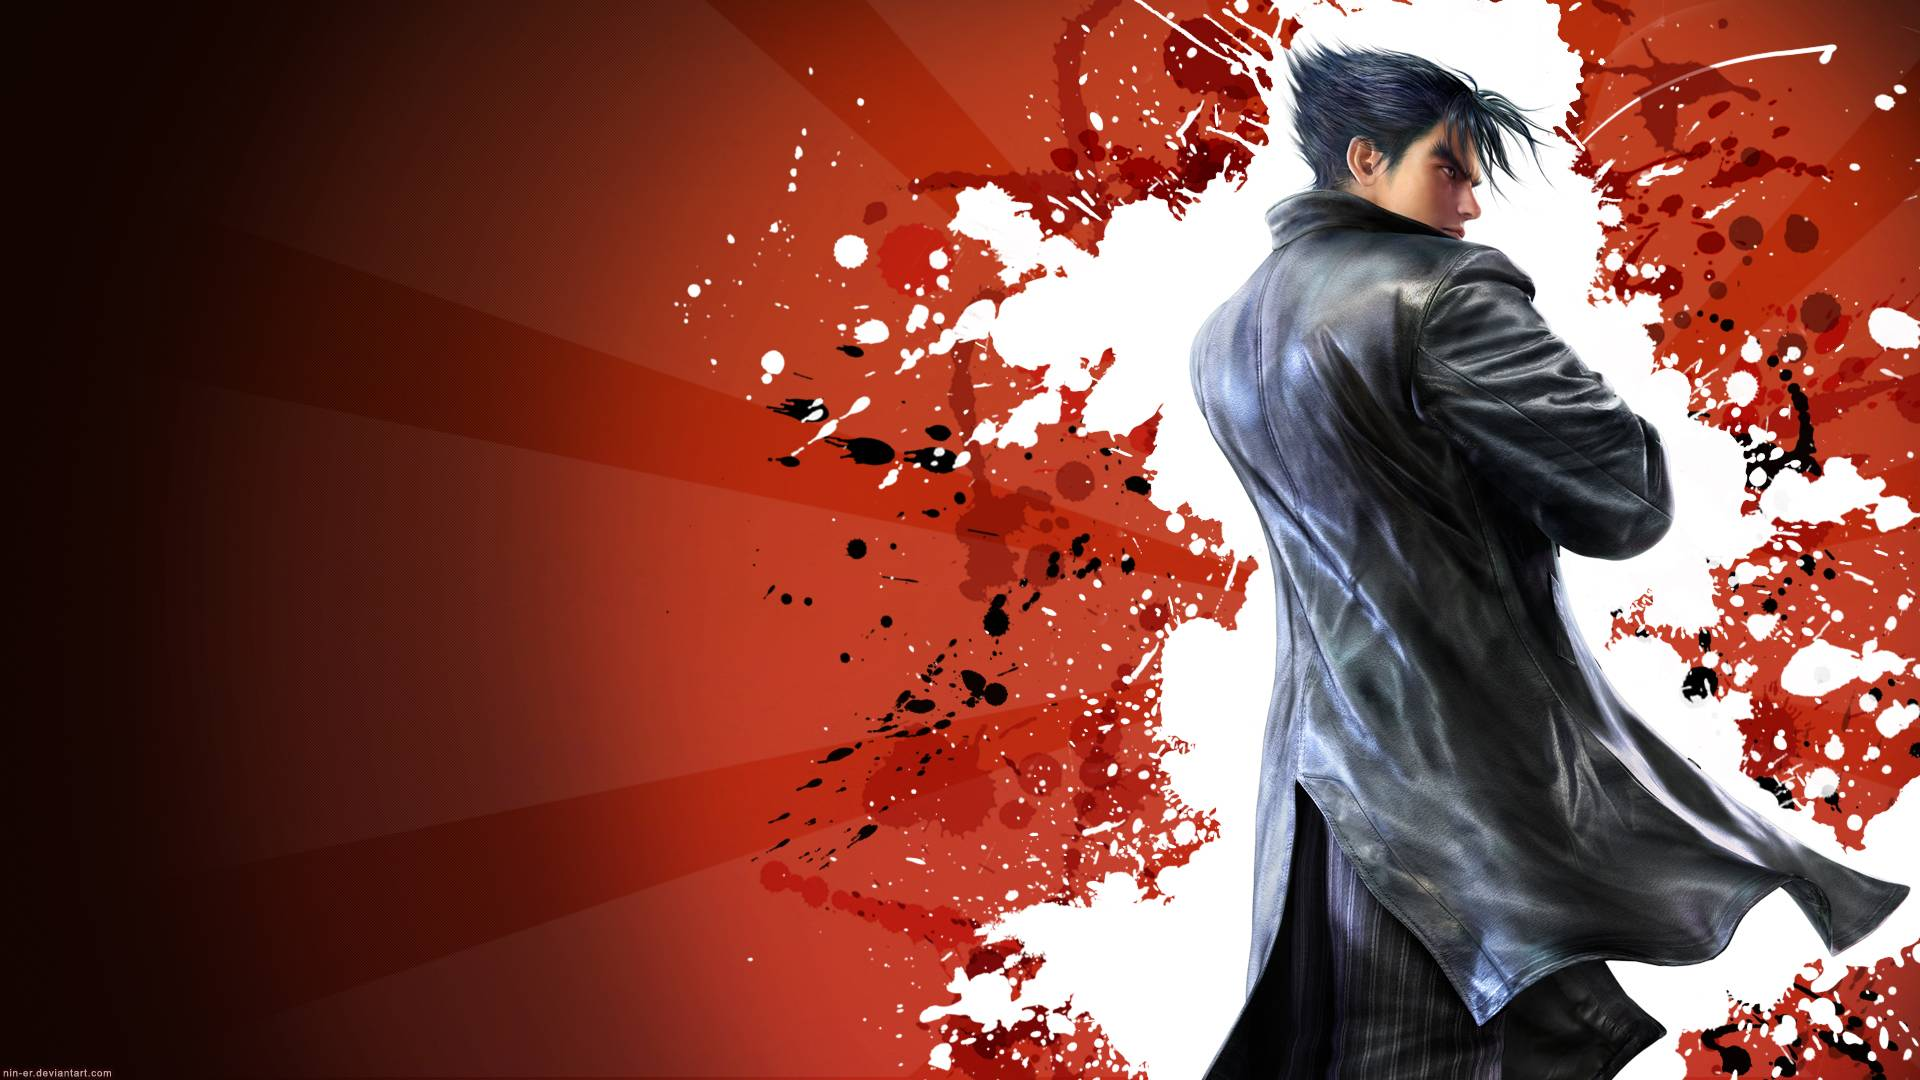 Tekken 6 Live Wallpaper